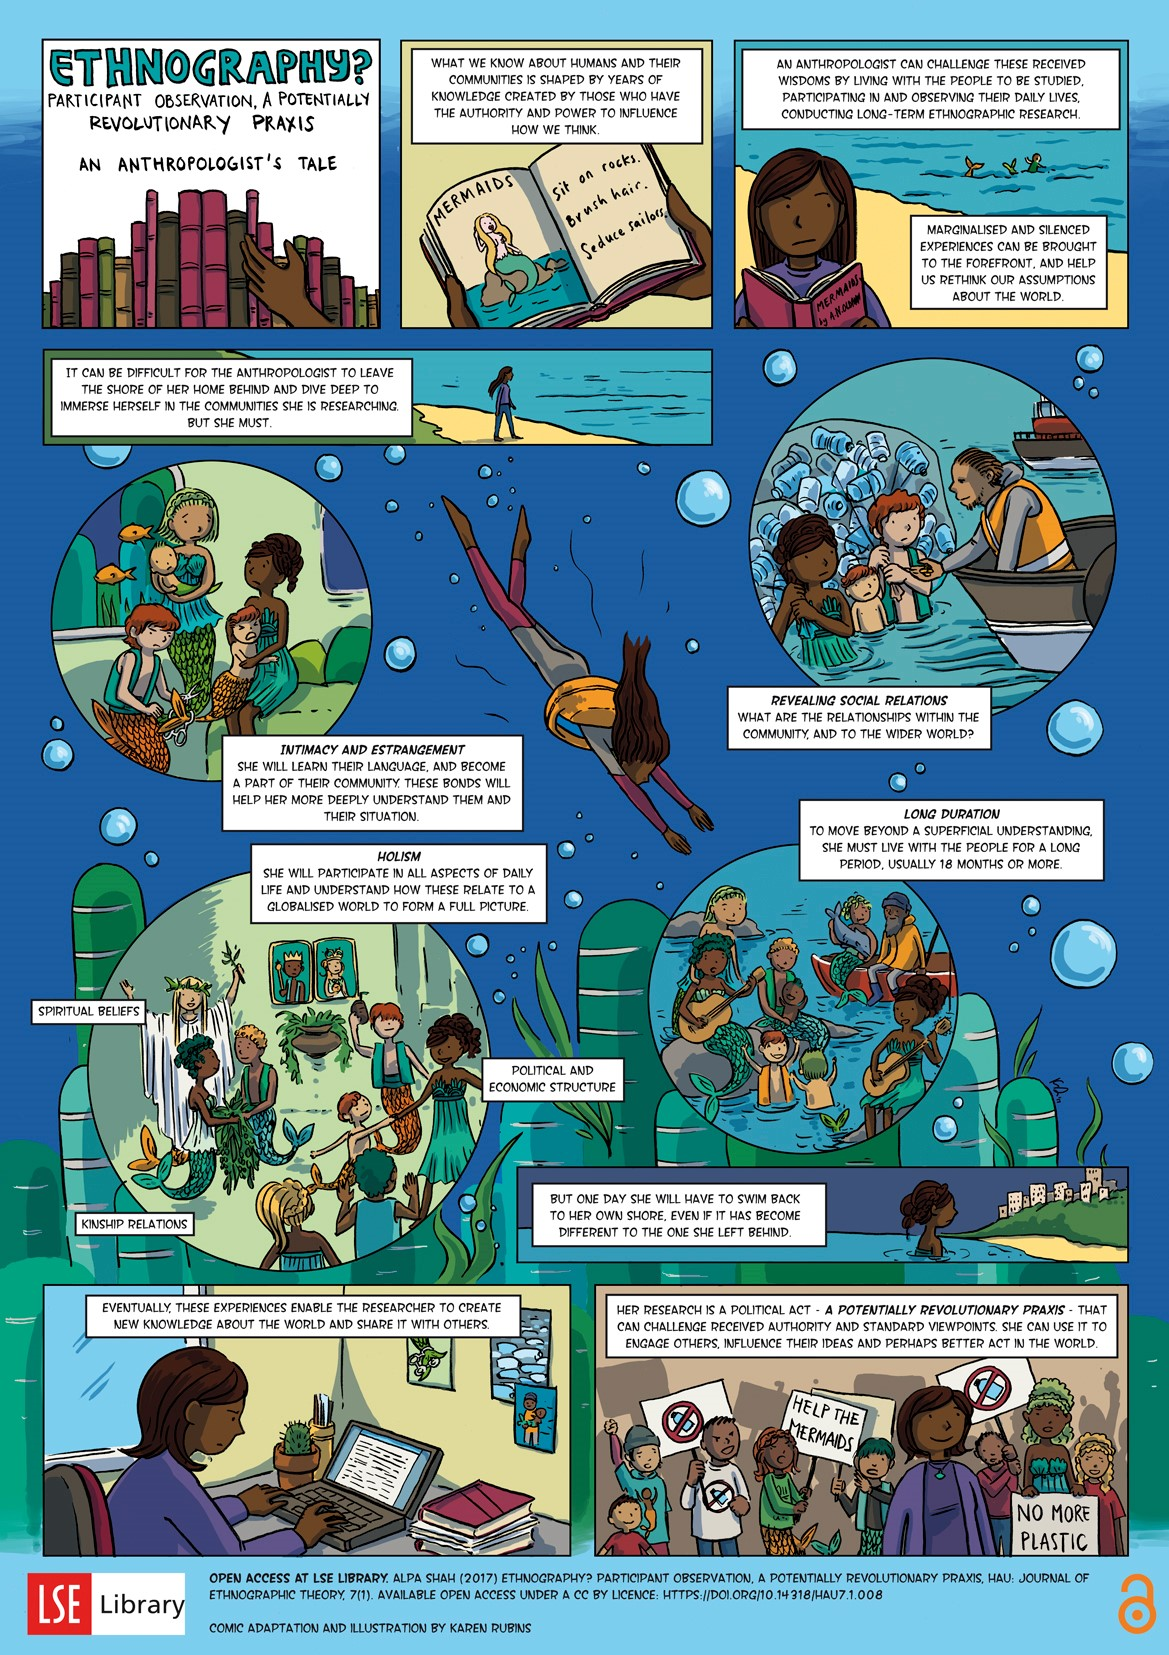 Comic Adaption of Alpa Shah's reflections on ethnography and participant observation. By Karen Rubins. Commissioned by LSE Library.